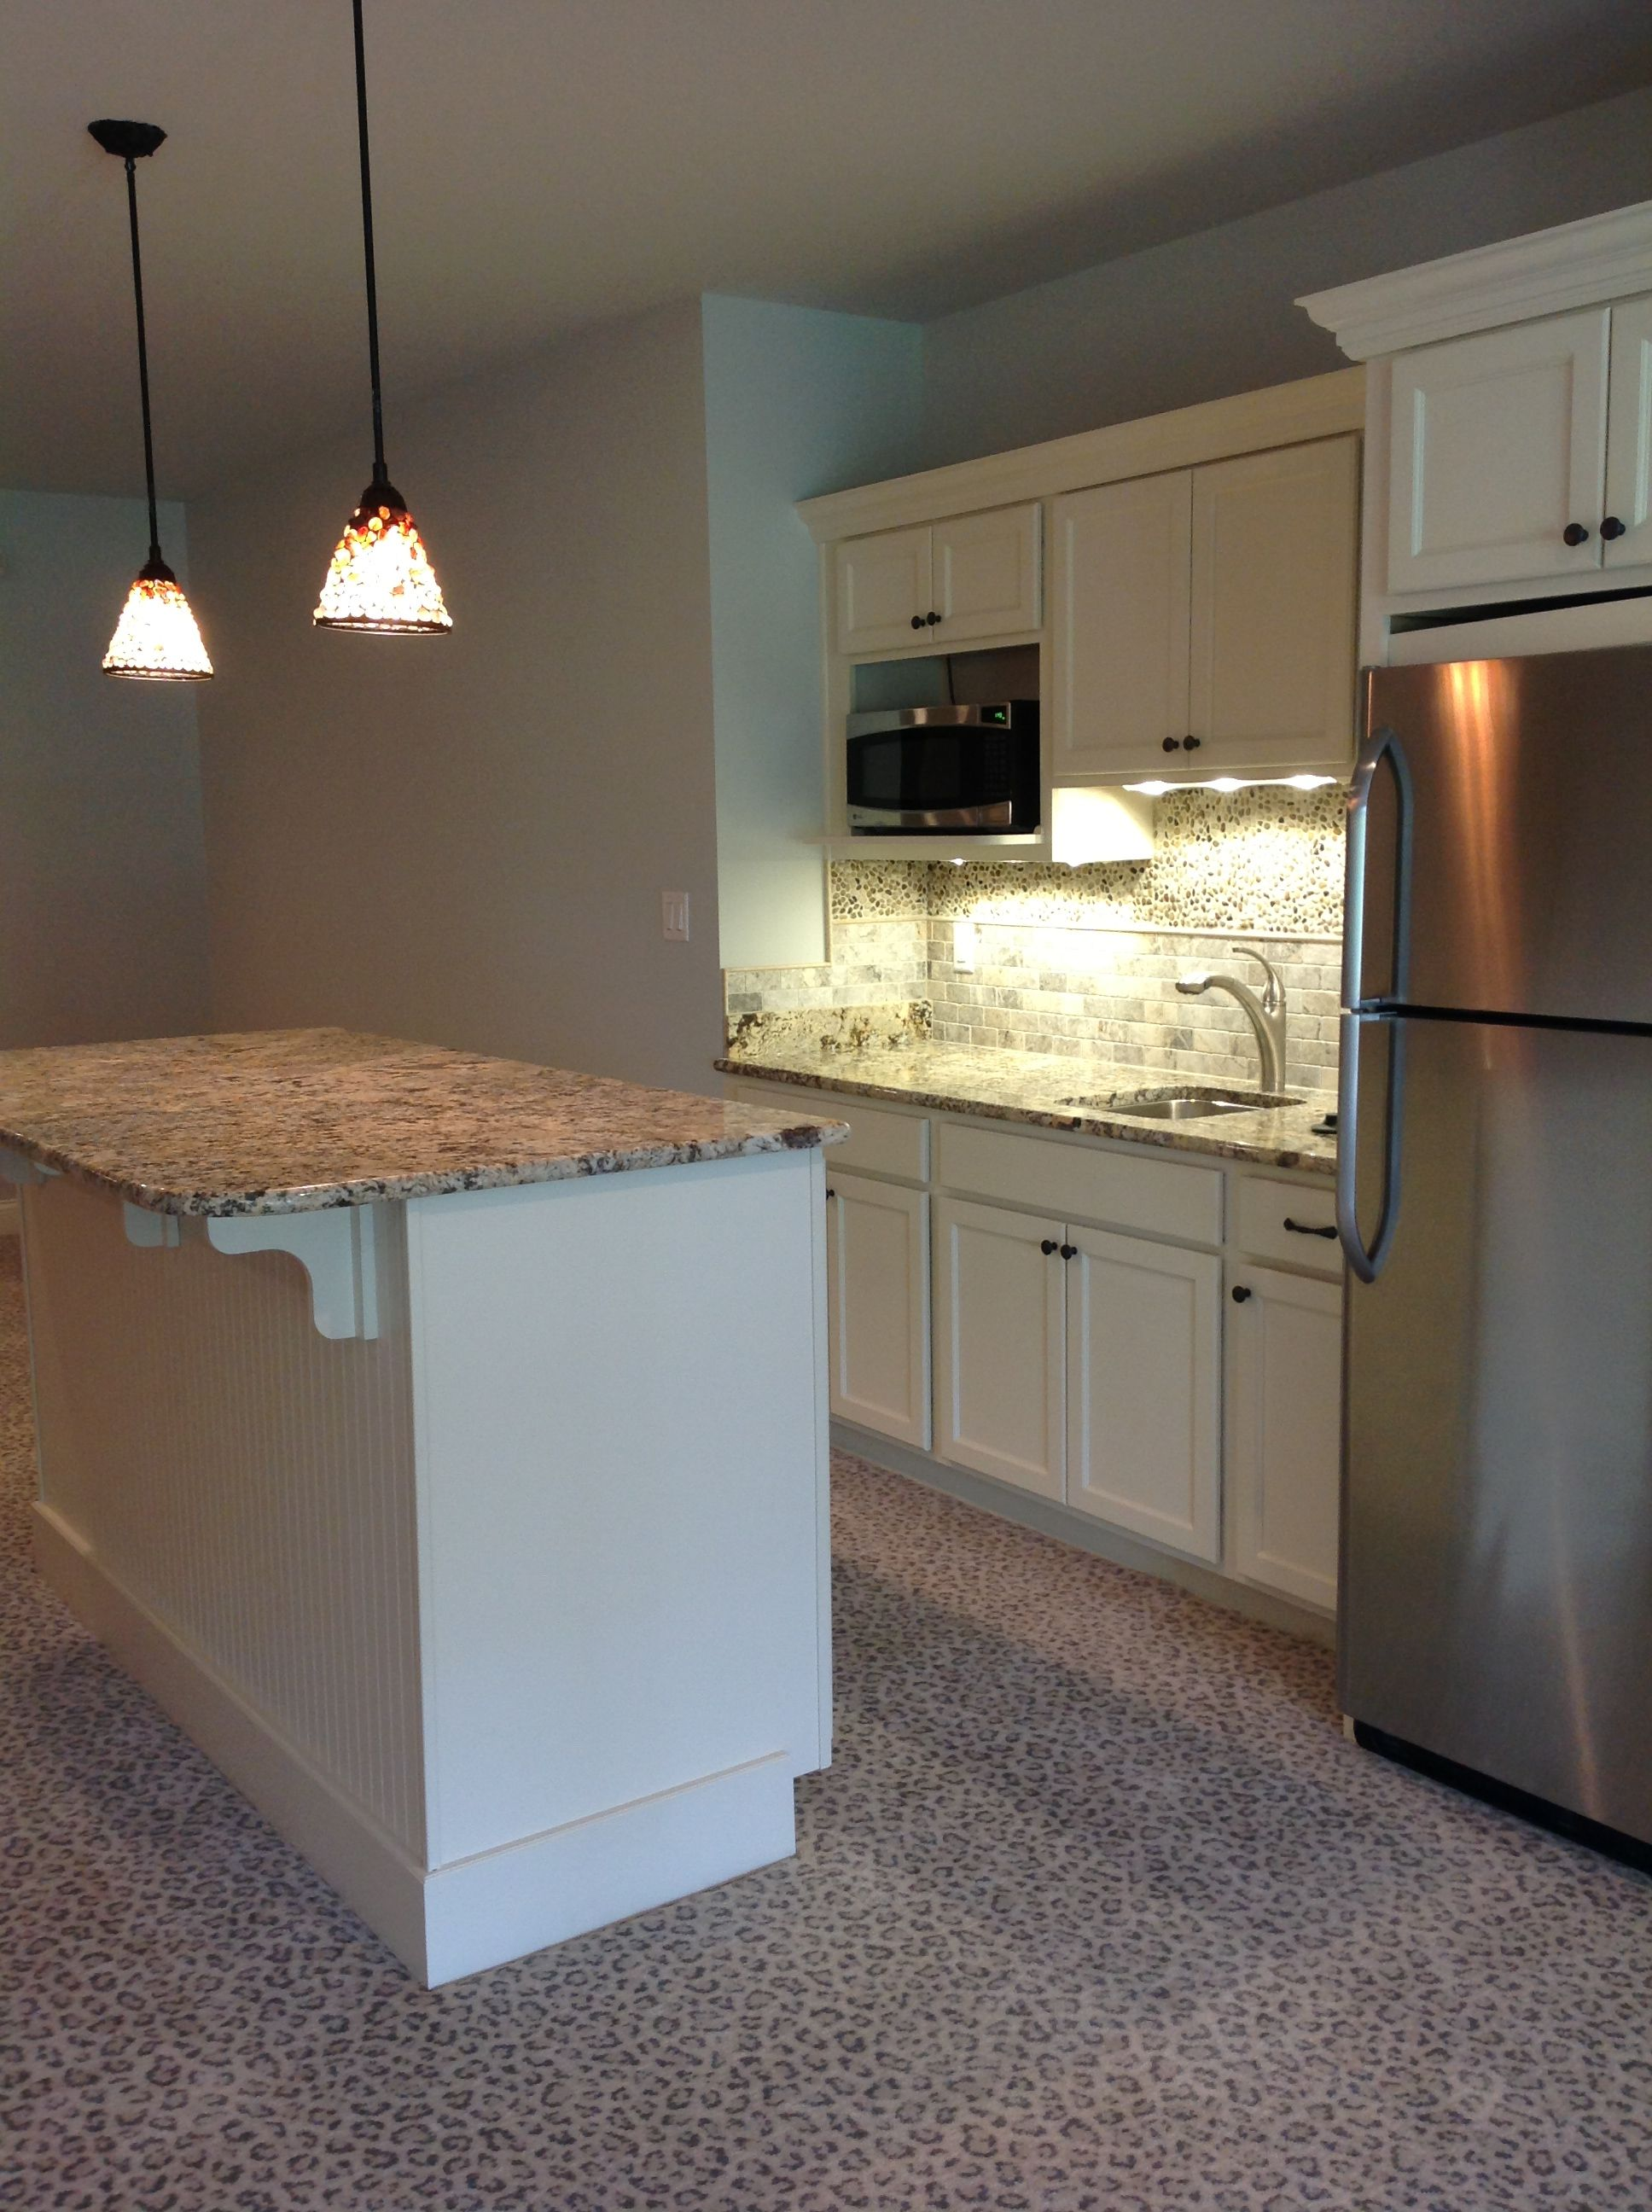 Basement kitchenette kitchens pinterest for Tiny kitchenette ideas